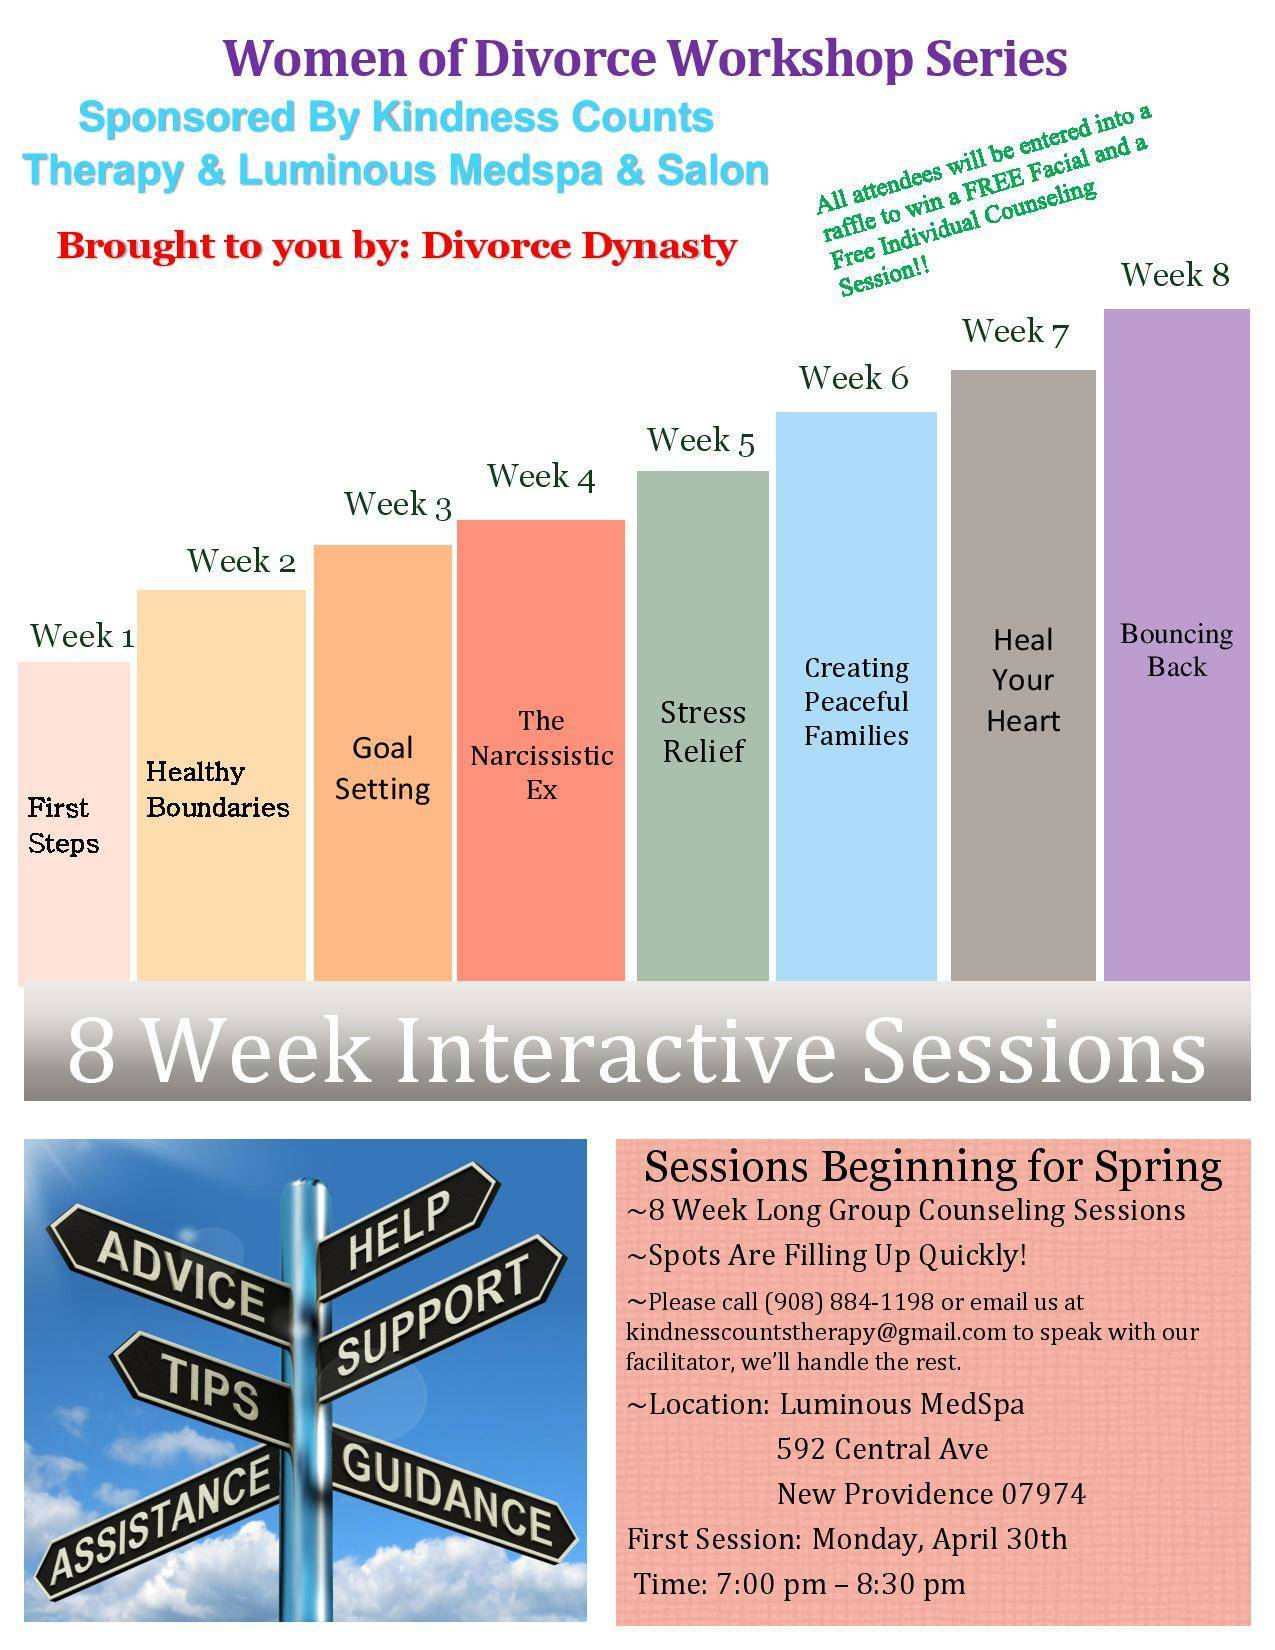 Divorce dynasty presents a free group counseling series tapinto divorce seriesg solutioingenieria Images